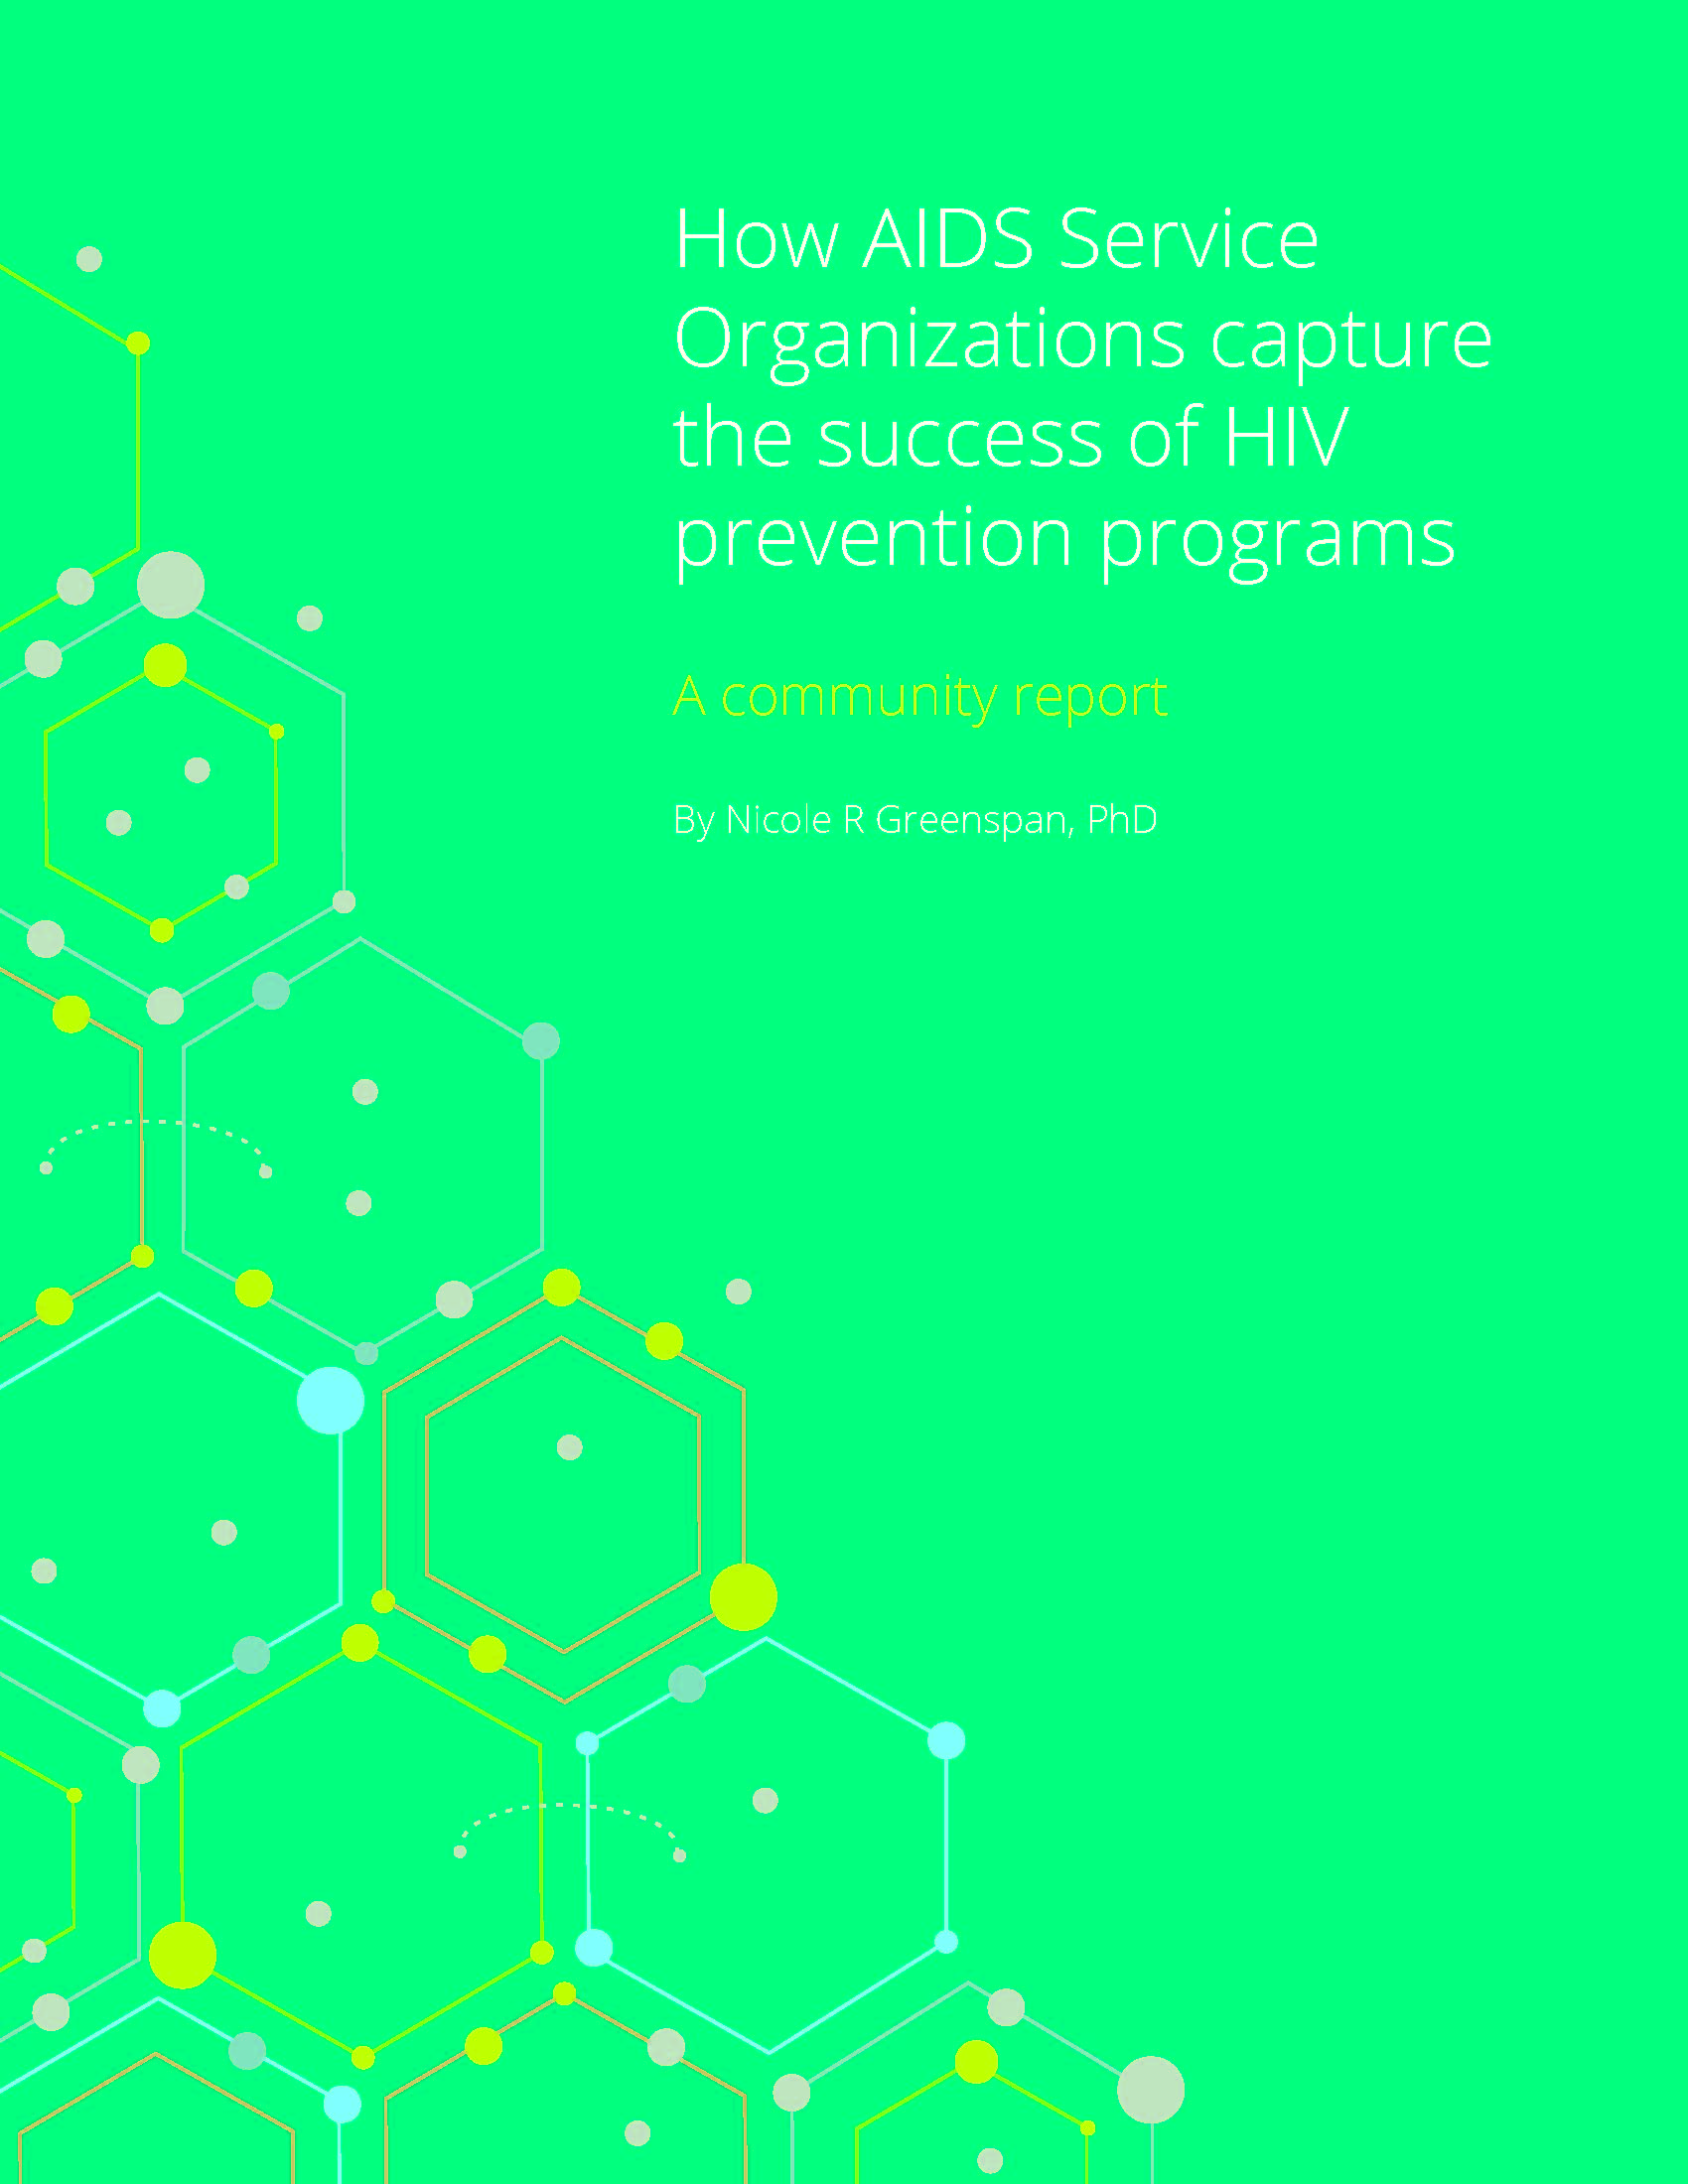 How AIDS Service Organizations capture the success of HIV prevention programs: A Community Report